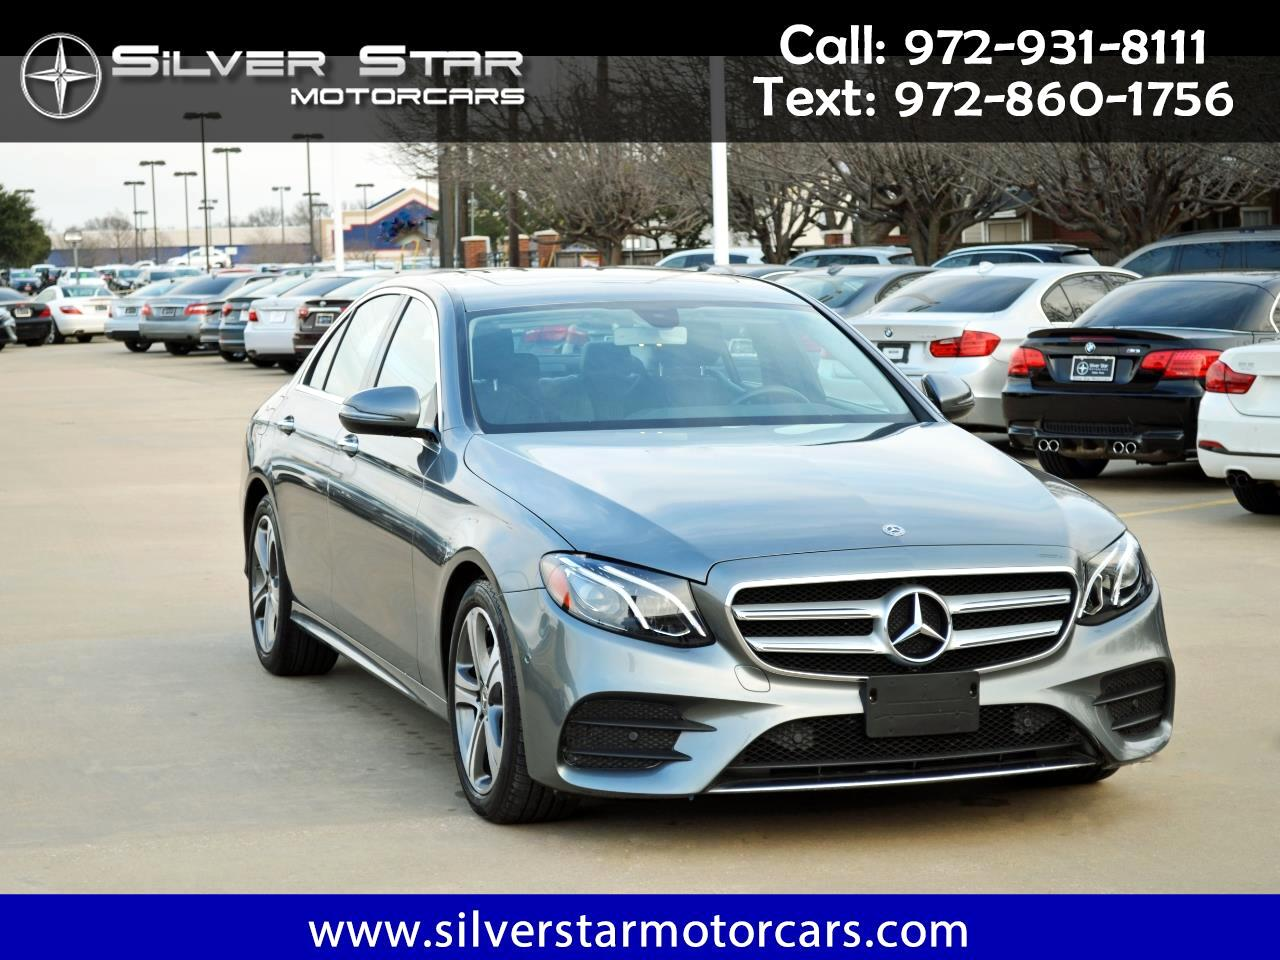 2018 Mercedes-Benz E-Class E 300 RWD Sedan